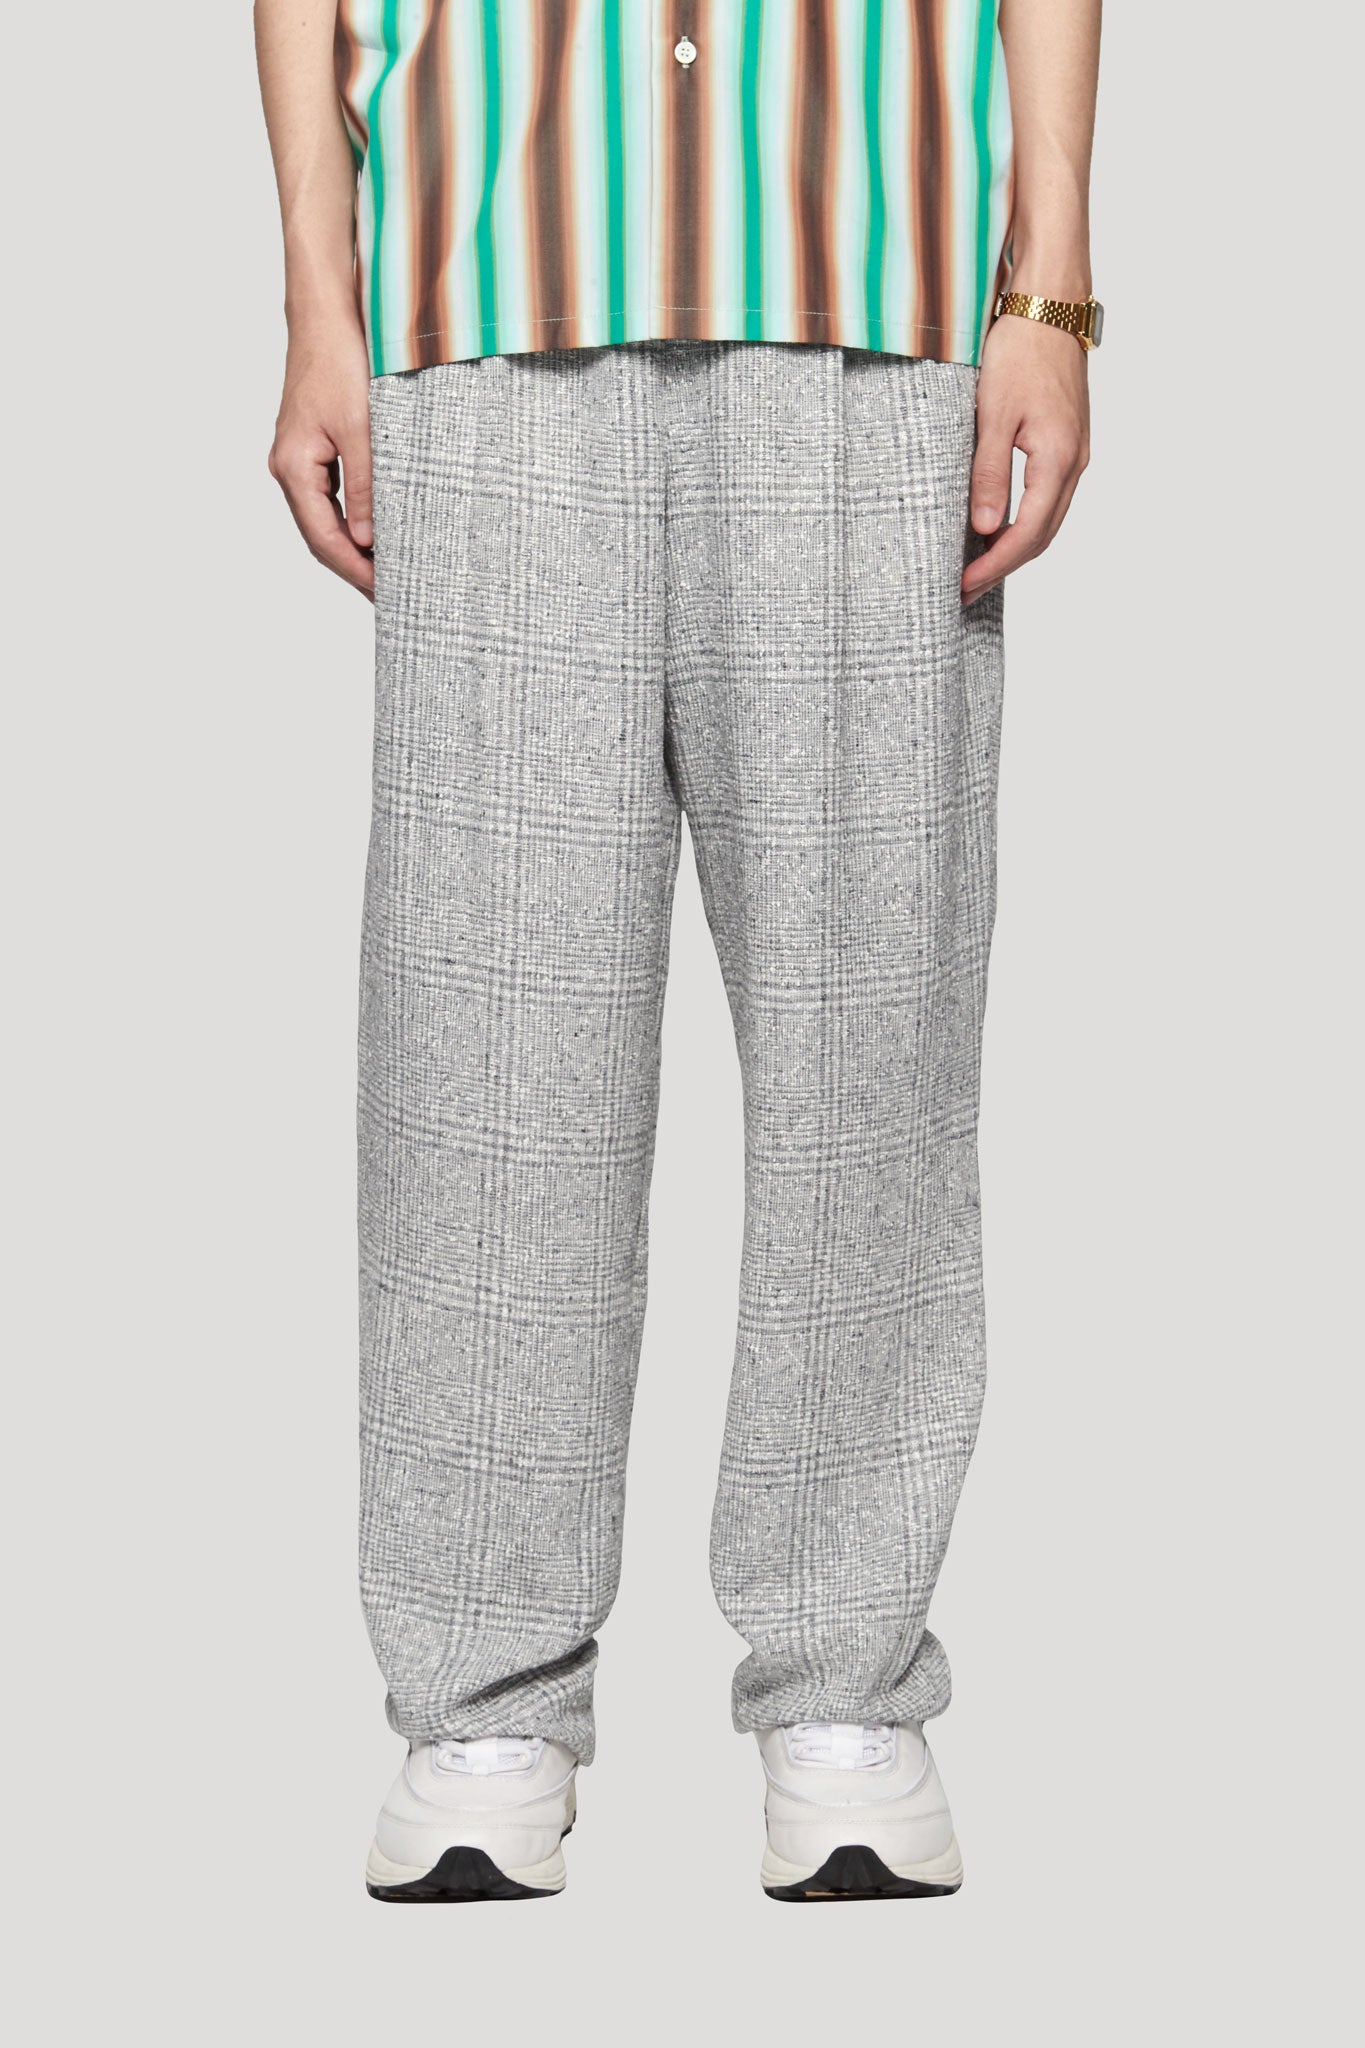 Mich Pleats Straight Trouser Silver Heaven Plaids